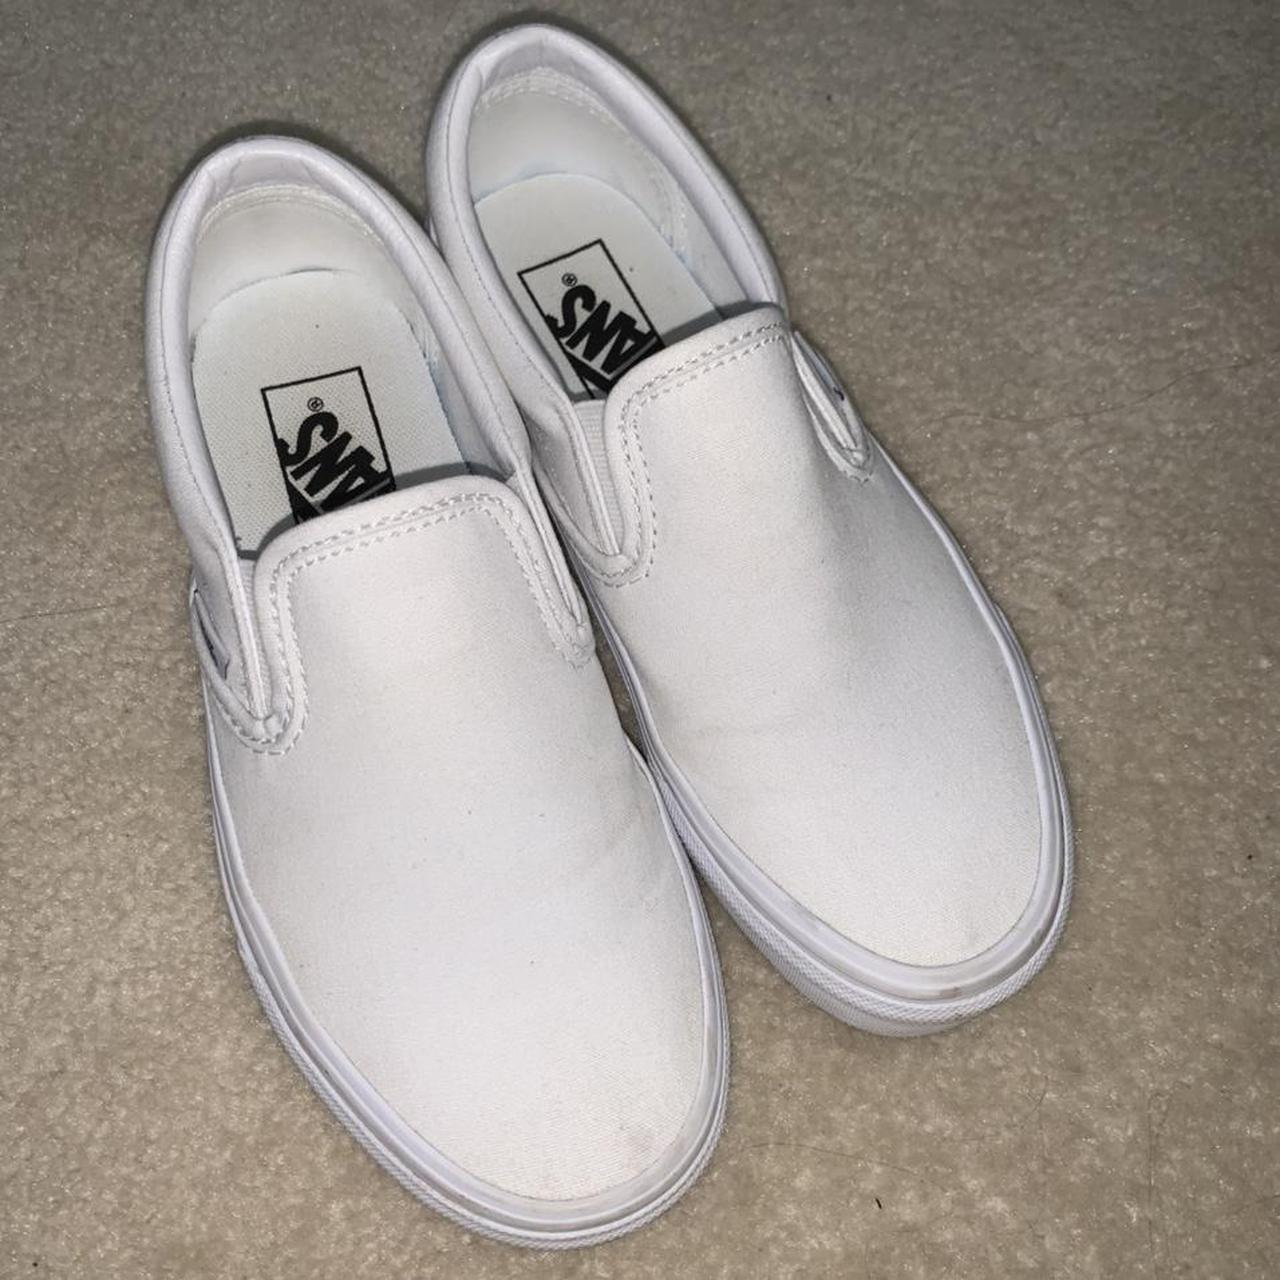 Product Image 1 - VANS CLASSIC SLIP ON IN